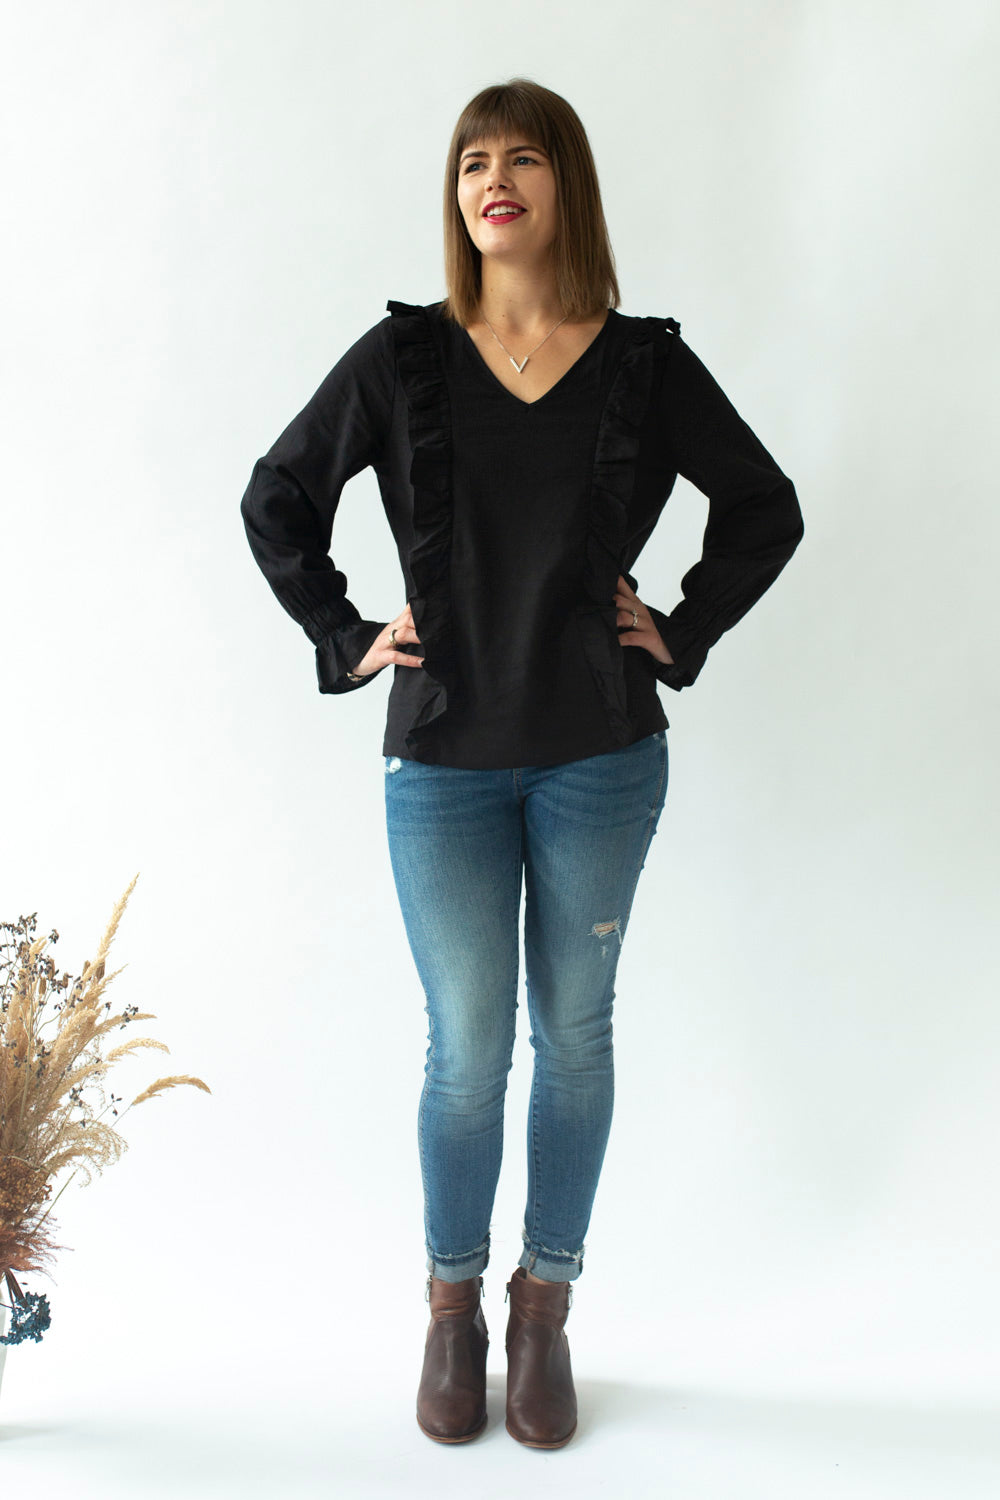 stylish-breastfeeding-top-winter-collection